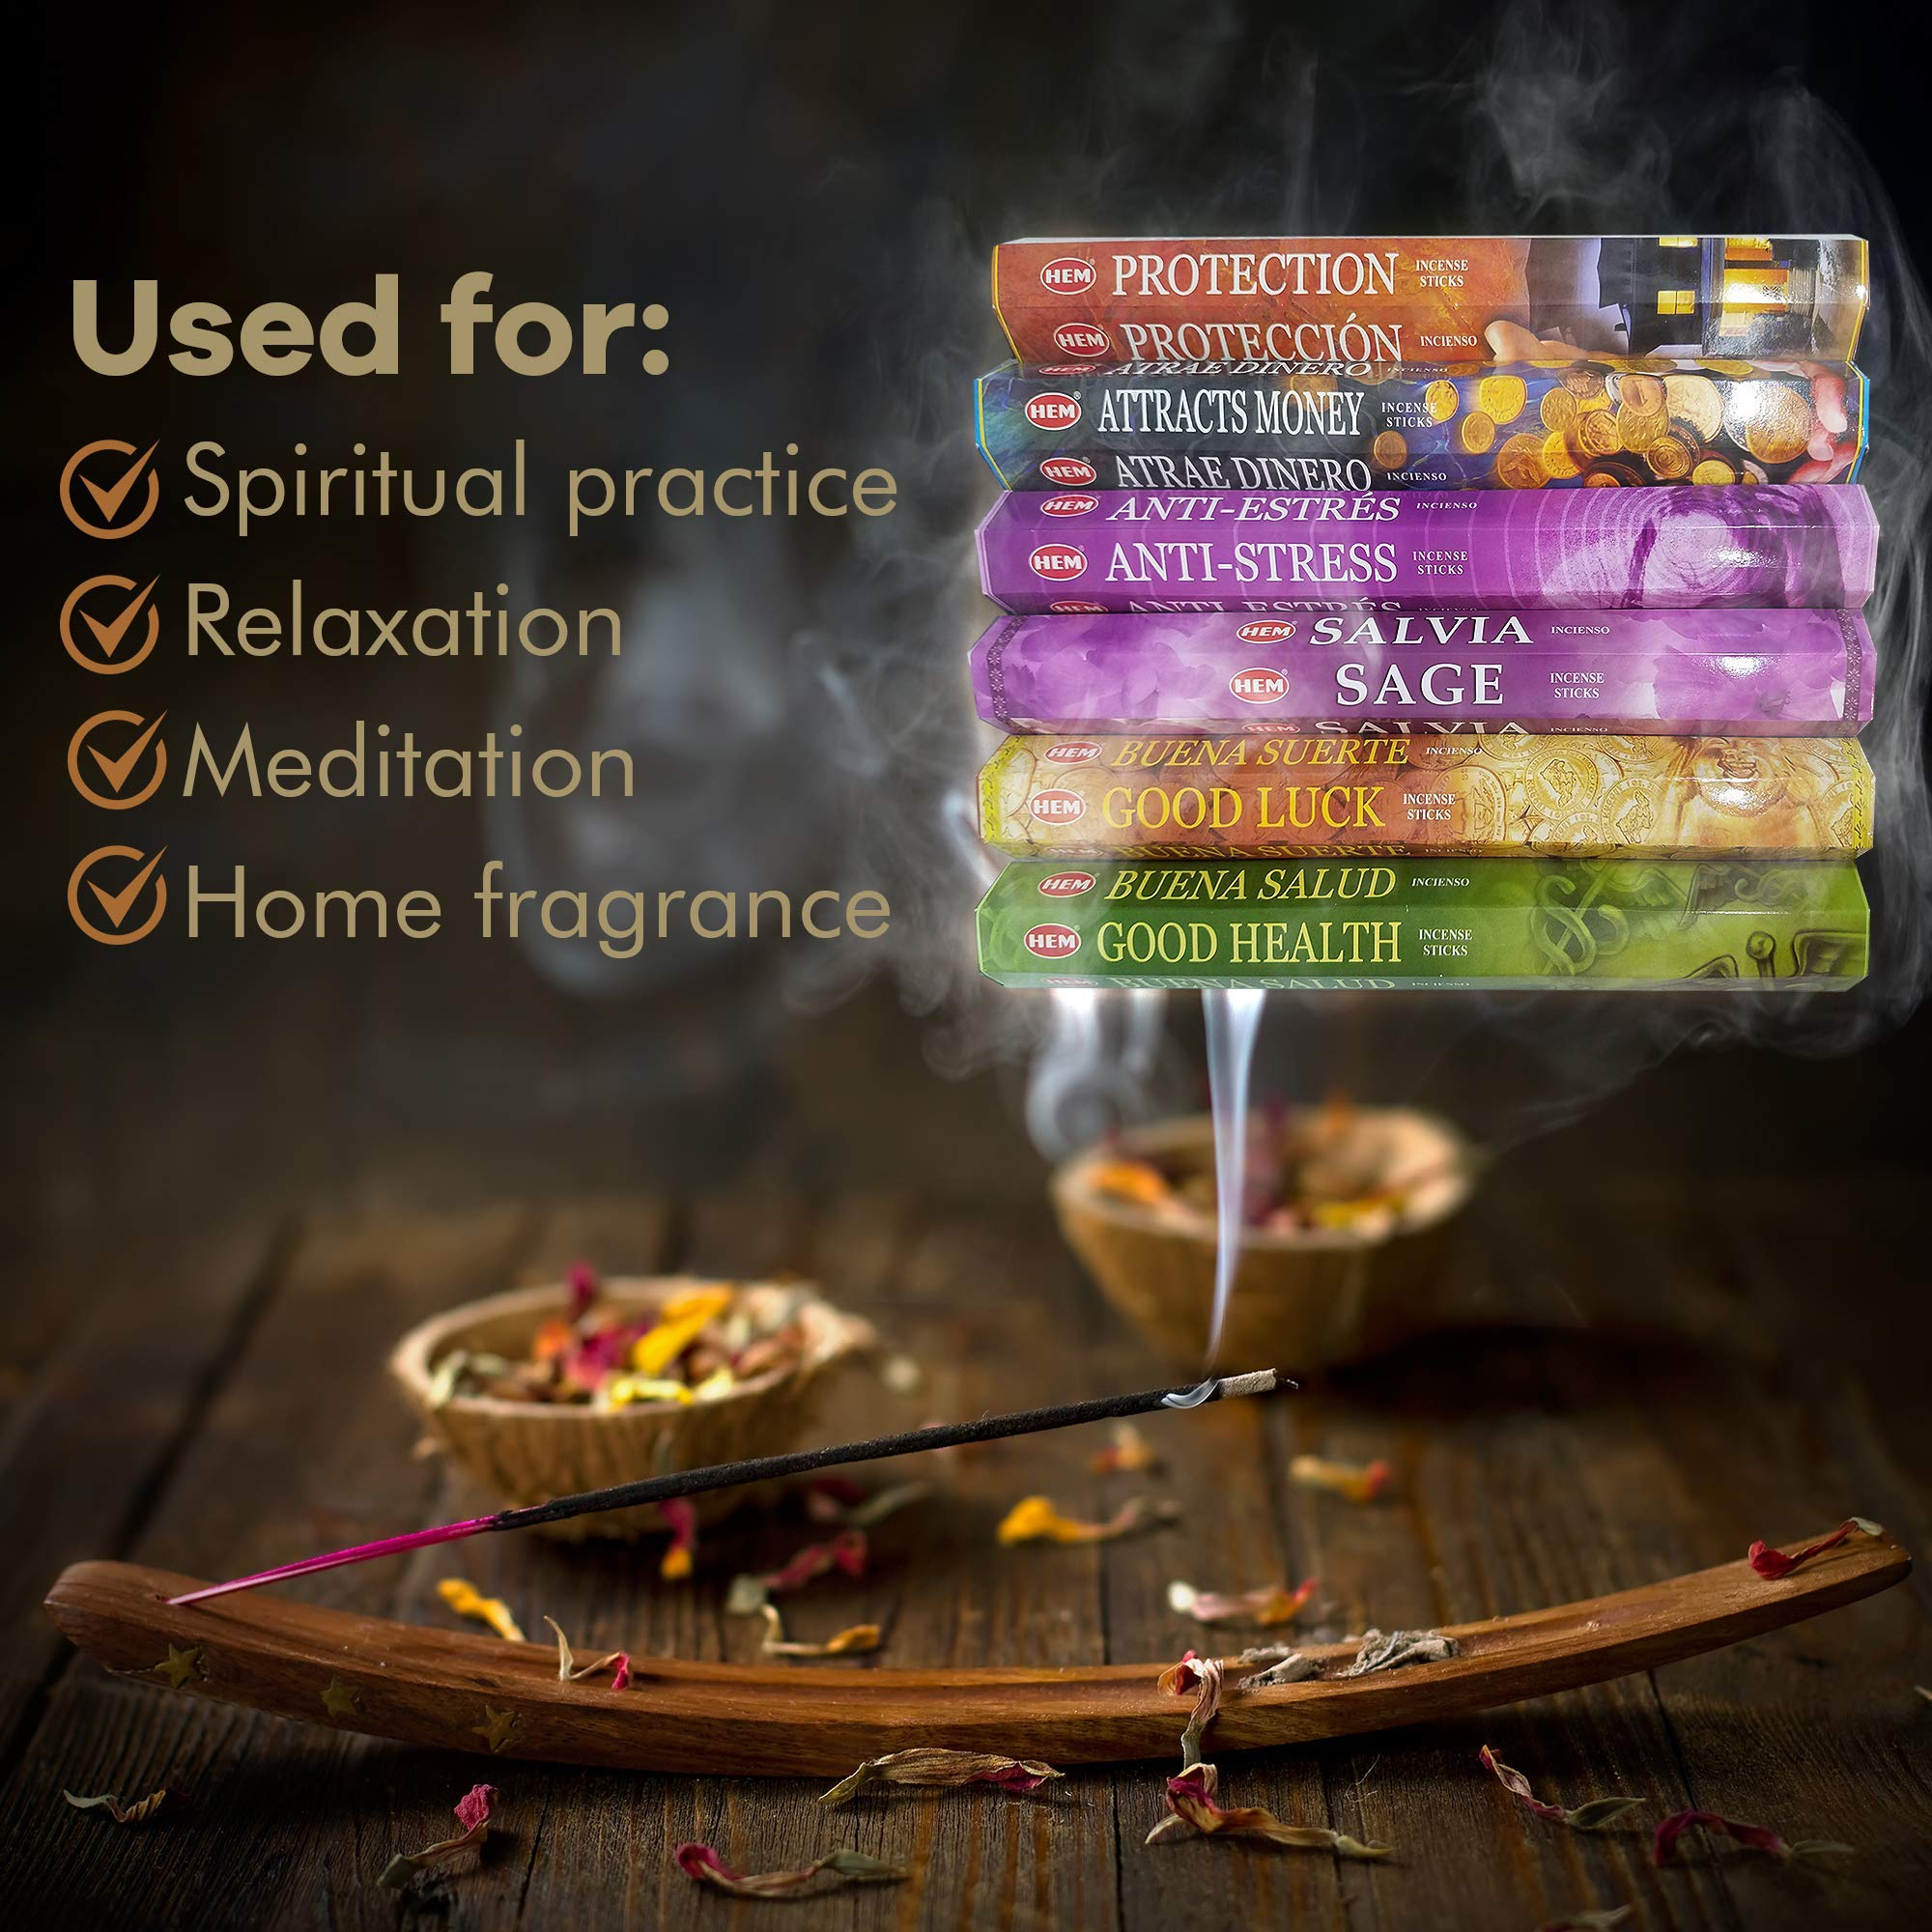 AurAmbiance New Age Feng Shui Incense Stick Spiritual Gifts Set; Inscents Sticks for Natural Healing & Protection by AurAmbiance (Image #2)